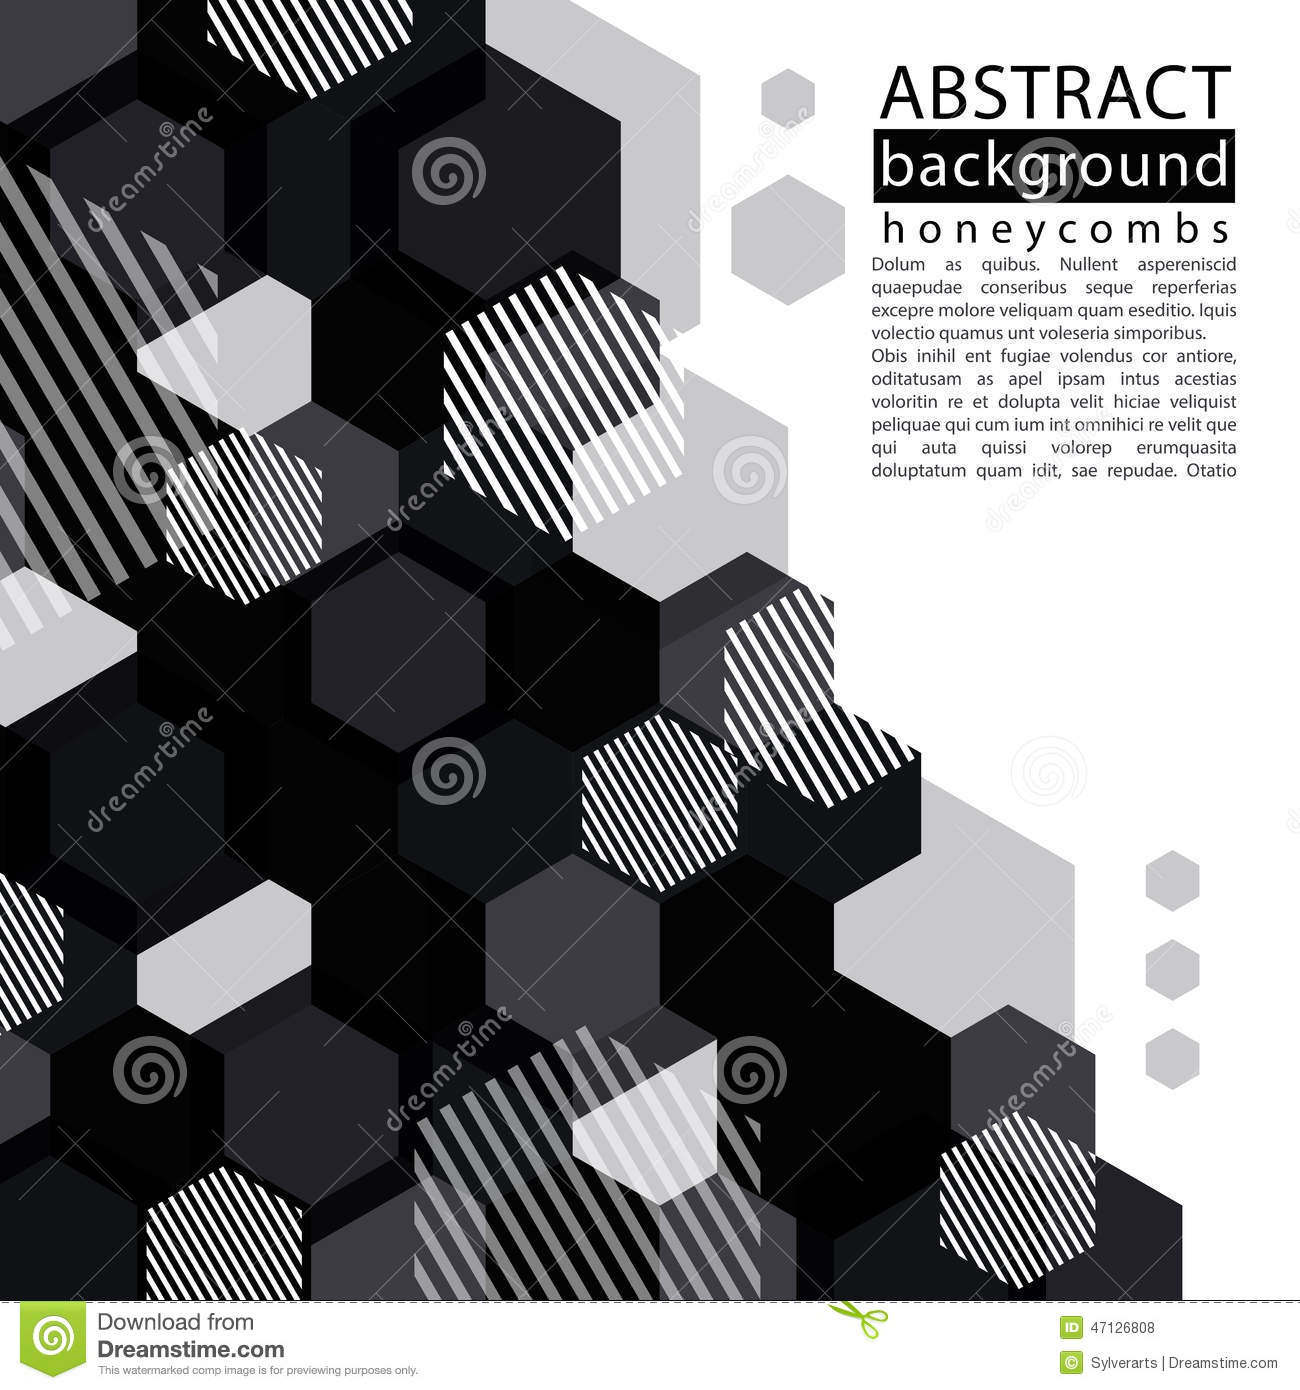 Black and white honeycomb abstract background with caption and t